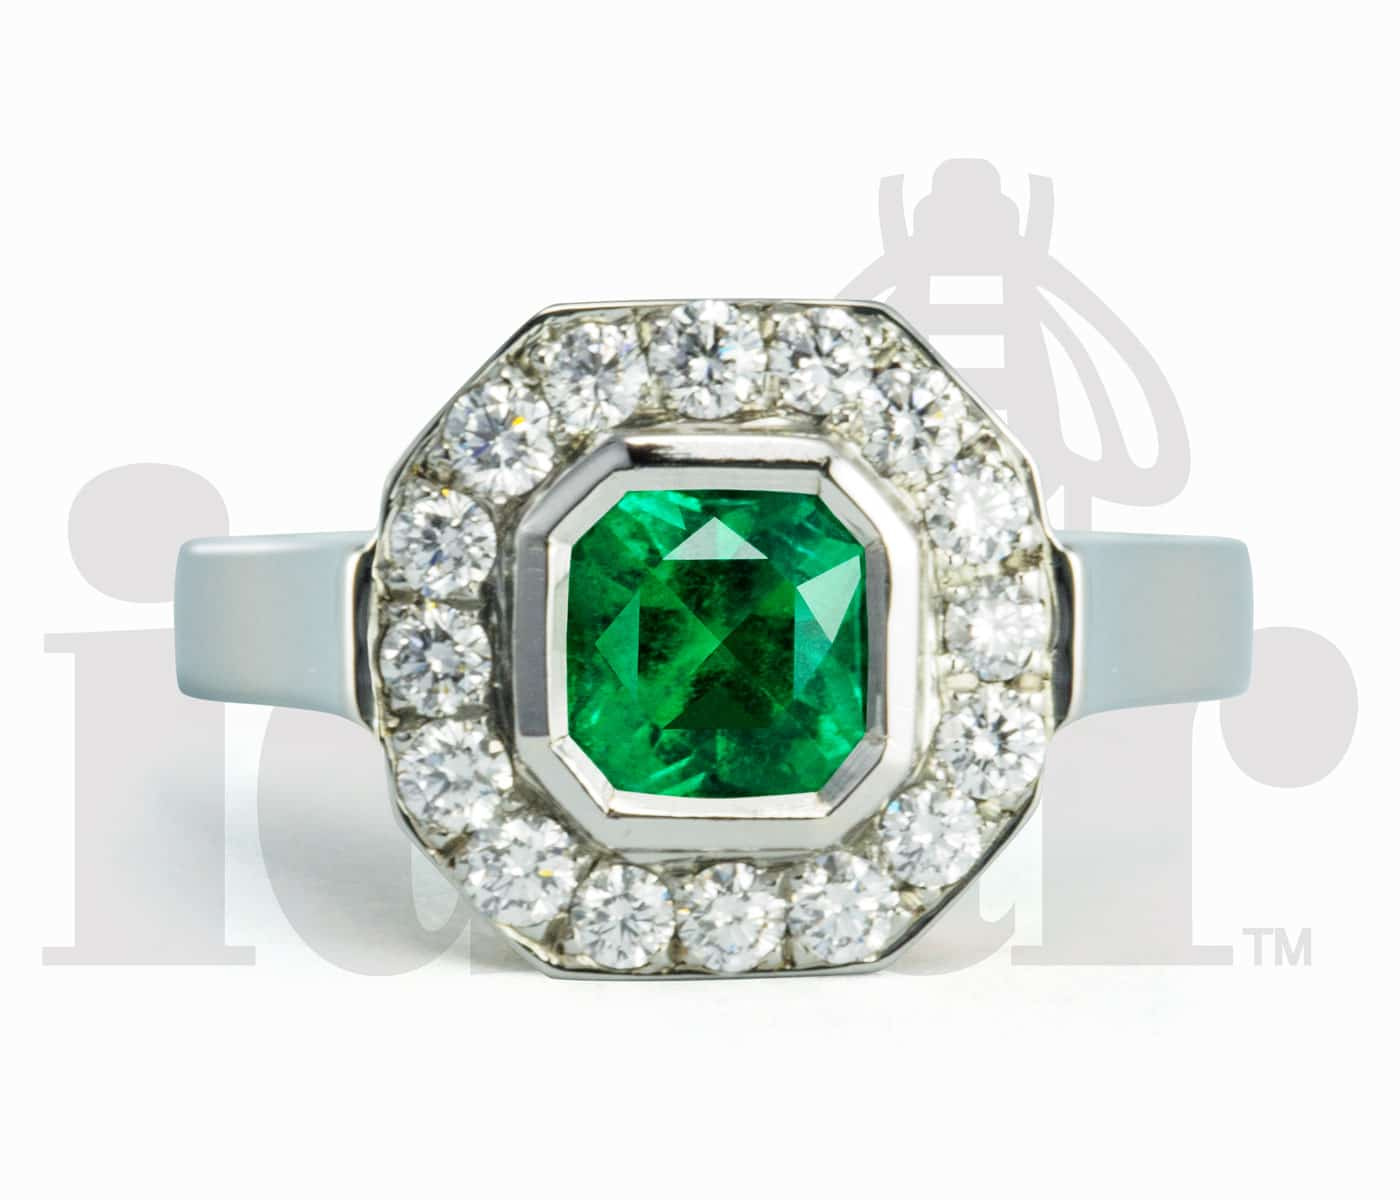 Idar Jewellers, diamonds, gold handcrafted jewellery, Emerald Halo Ring with Arabesque Gallery, Victoria, BC, Vancouver, Calgary, Edmonton, Ottawa, Toronto, Montreal, Canada